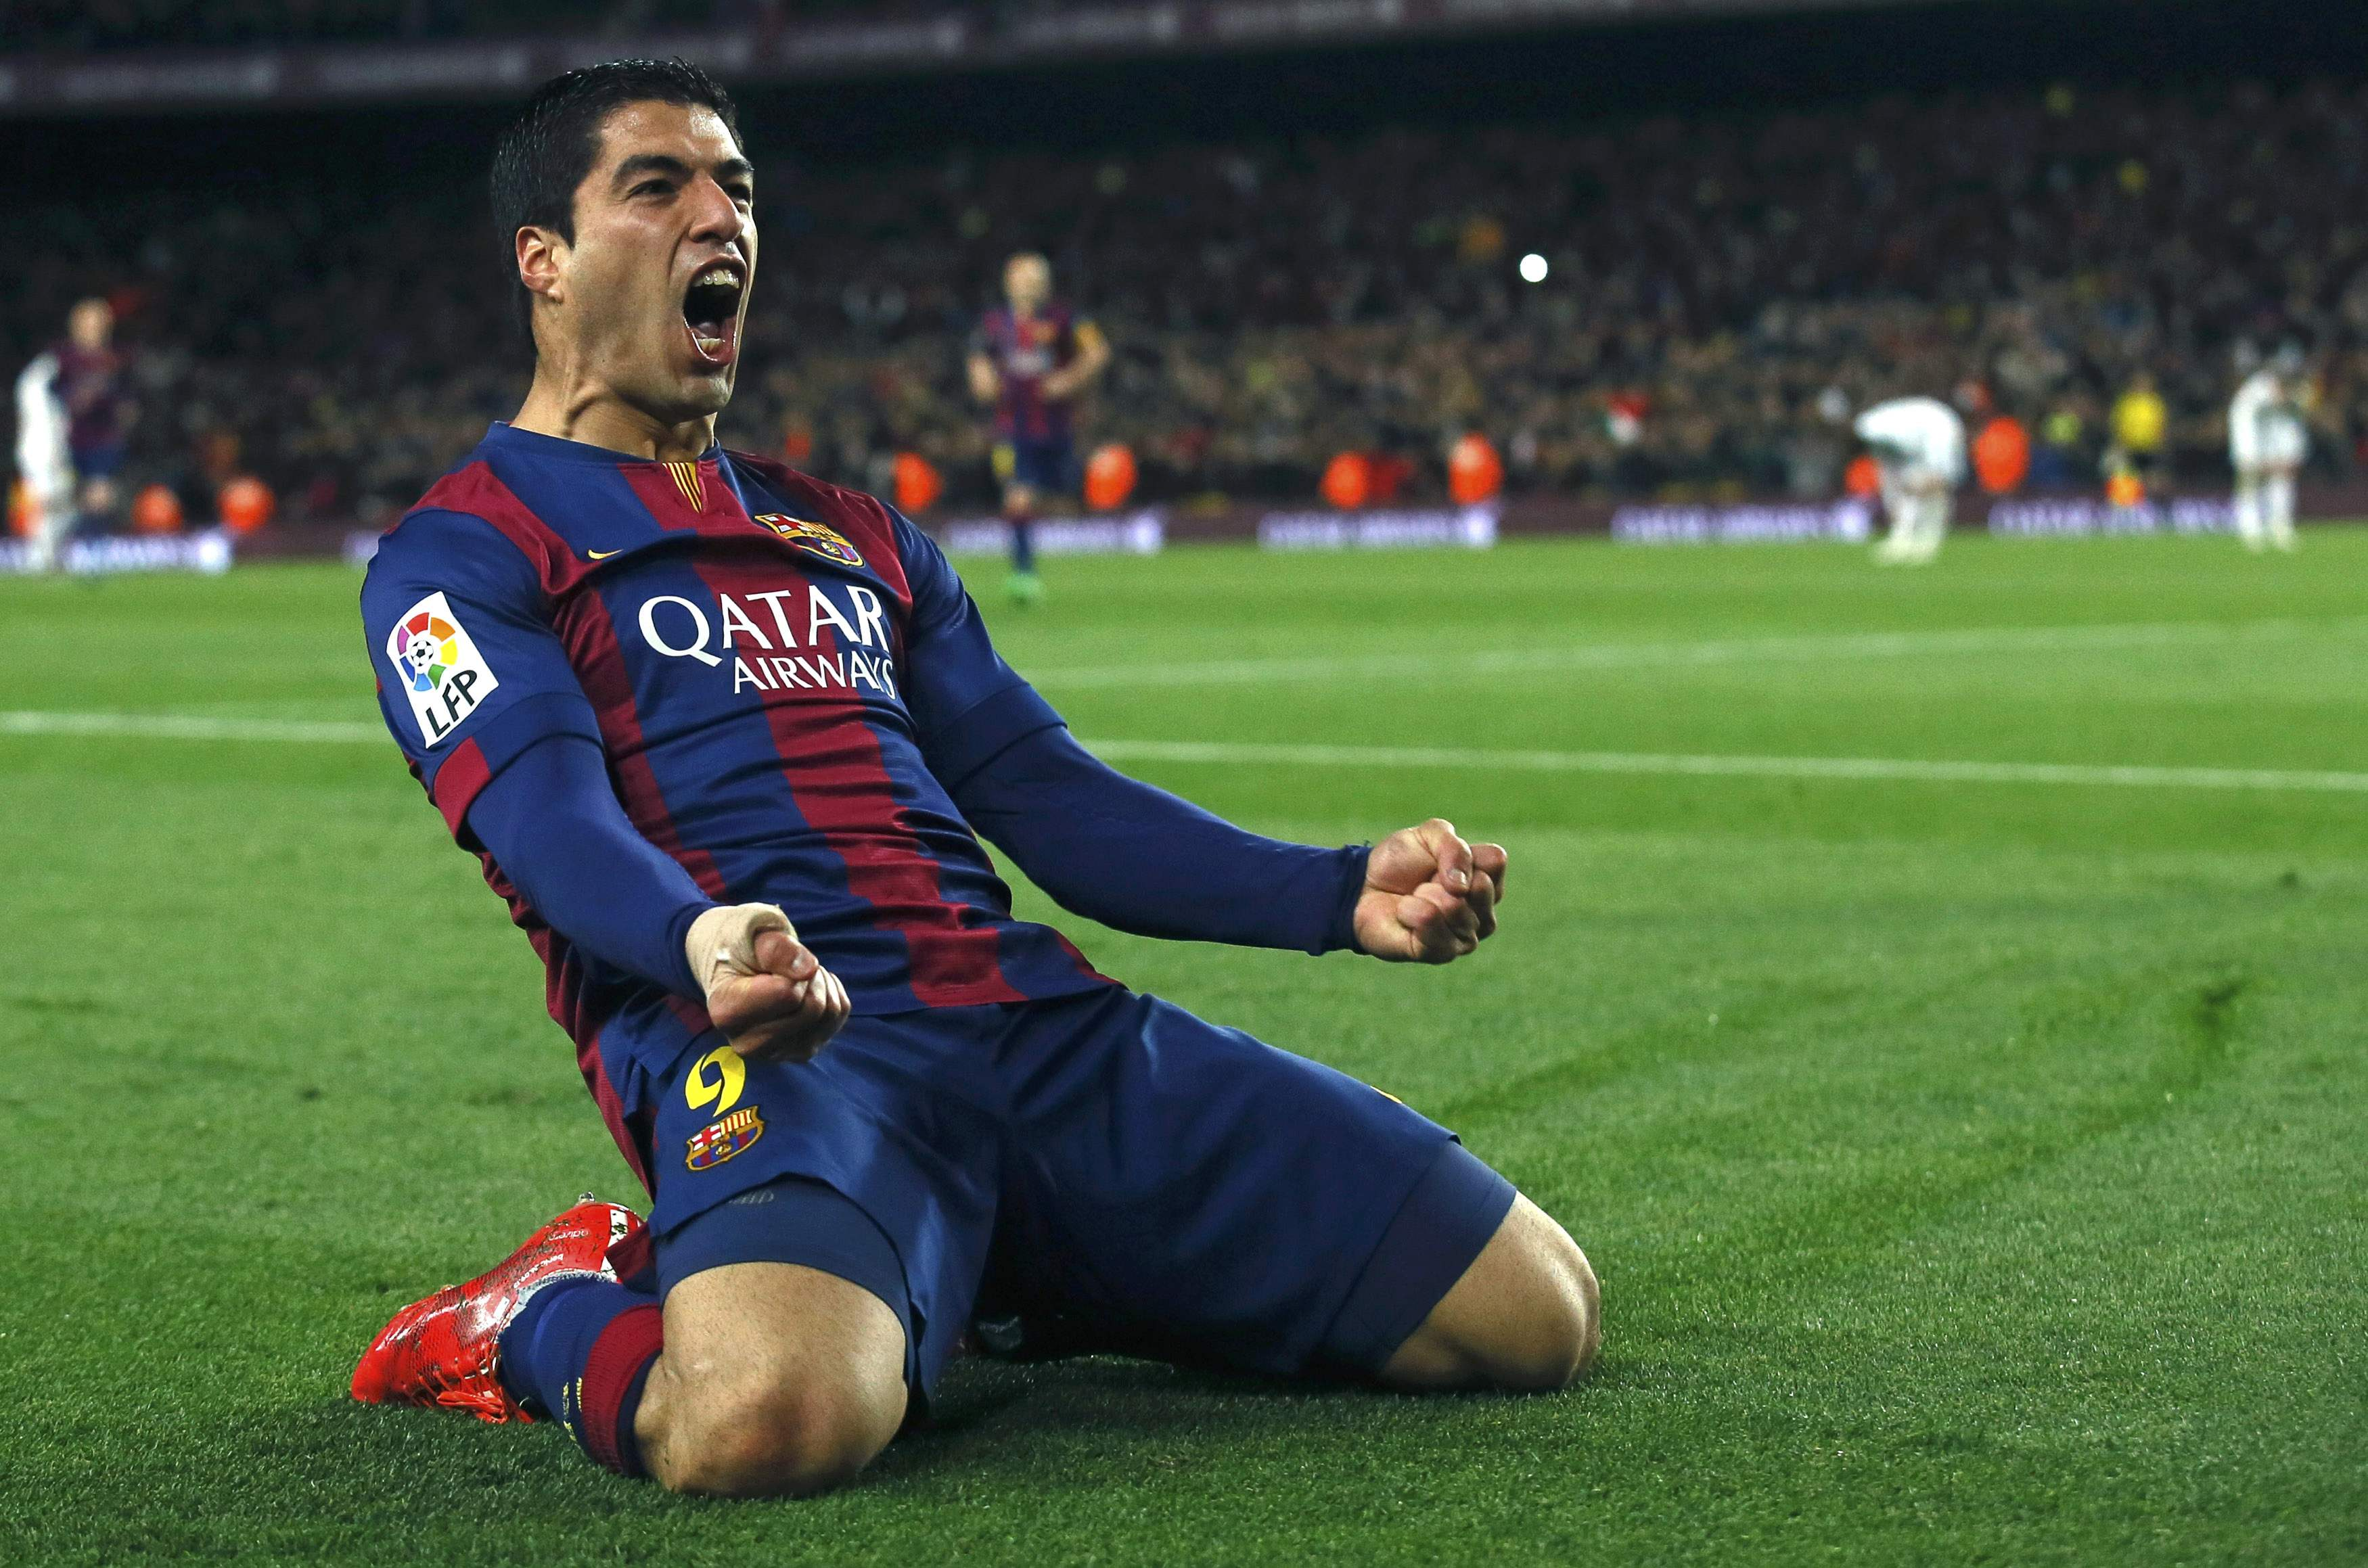 """Barcelona's Suarez celebrates after scoring a goal against Real Madrid during their Spanish first division """"Clasico"""" soccer match at Camp Nou stadium in Barcelona"""